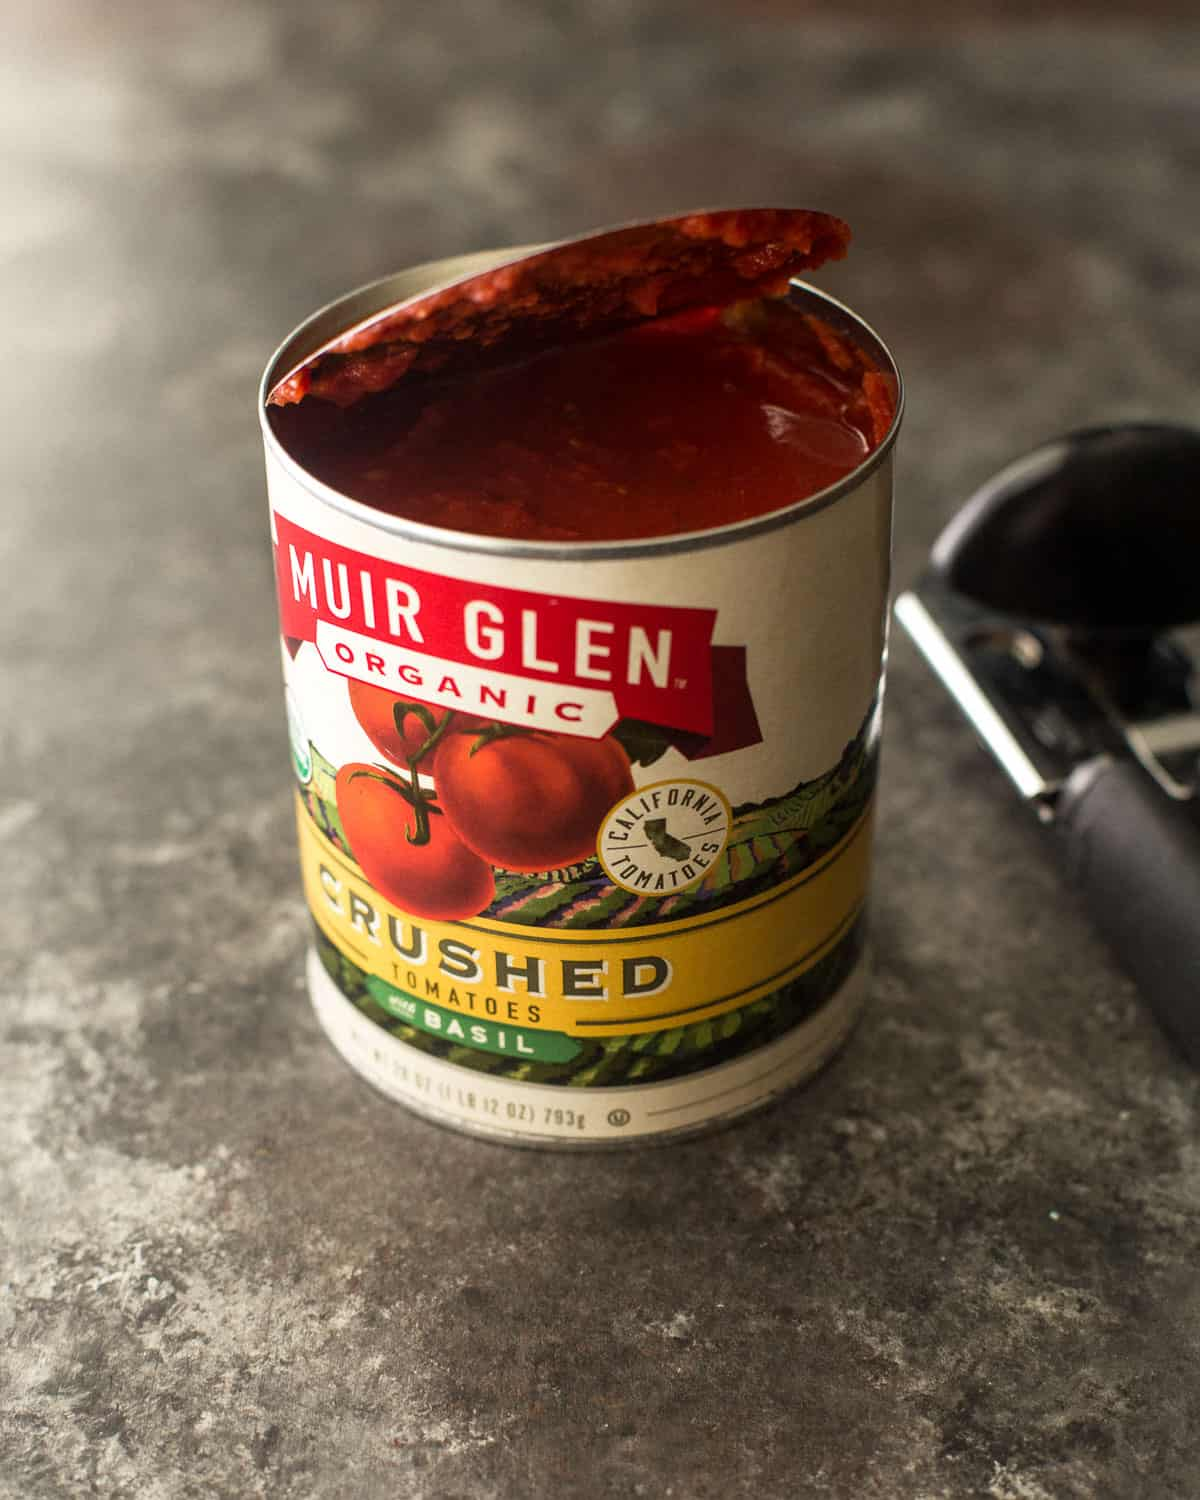 crushed tomatoes in a can